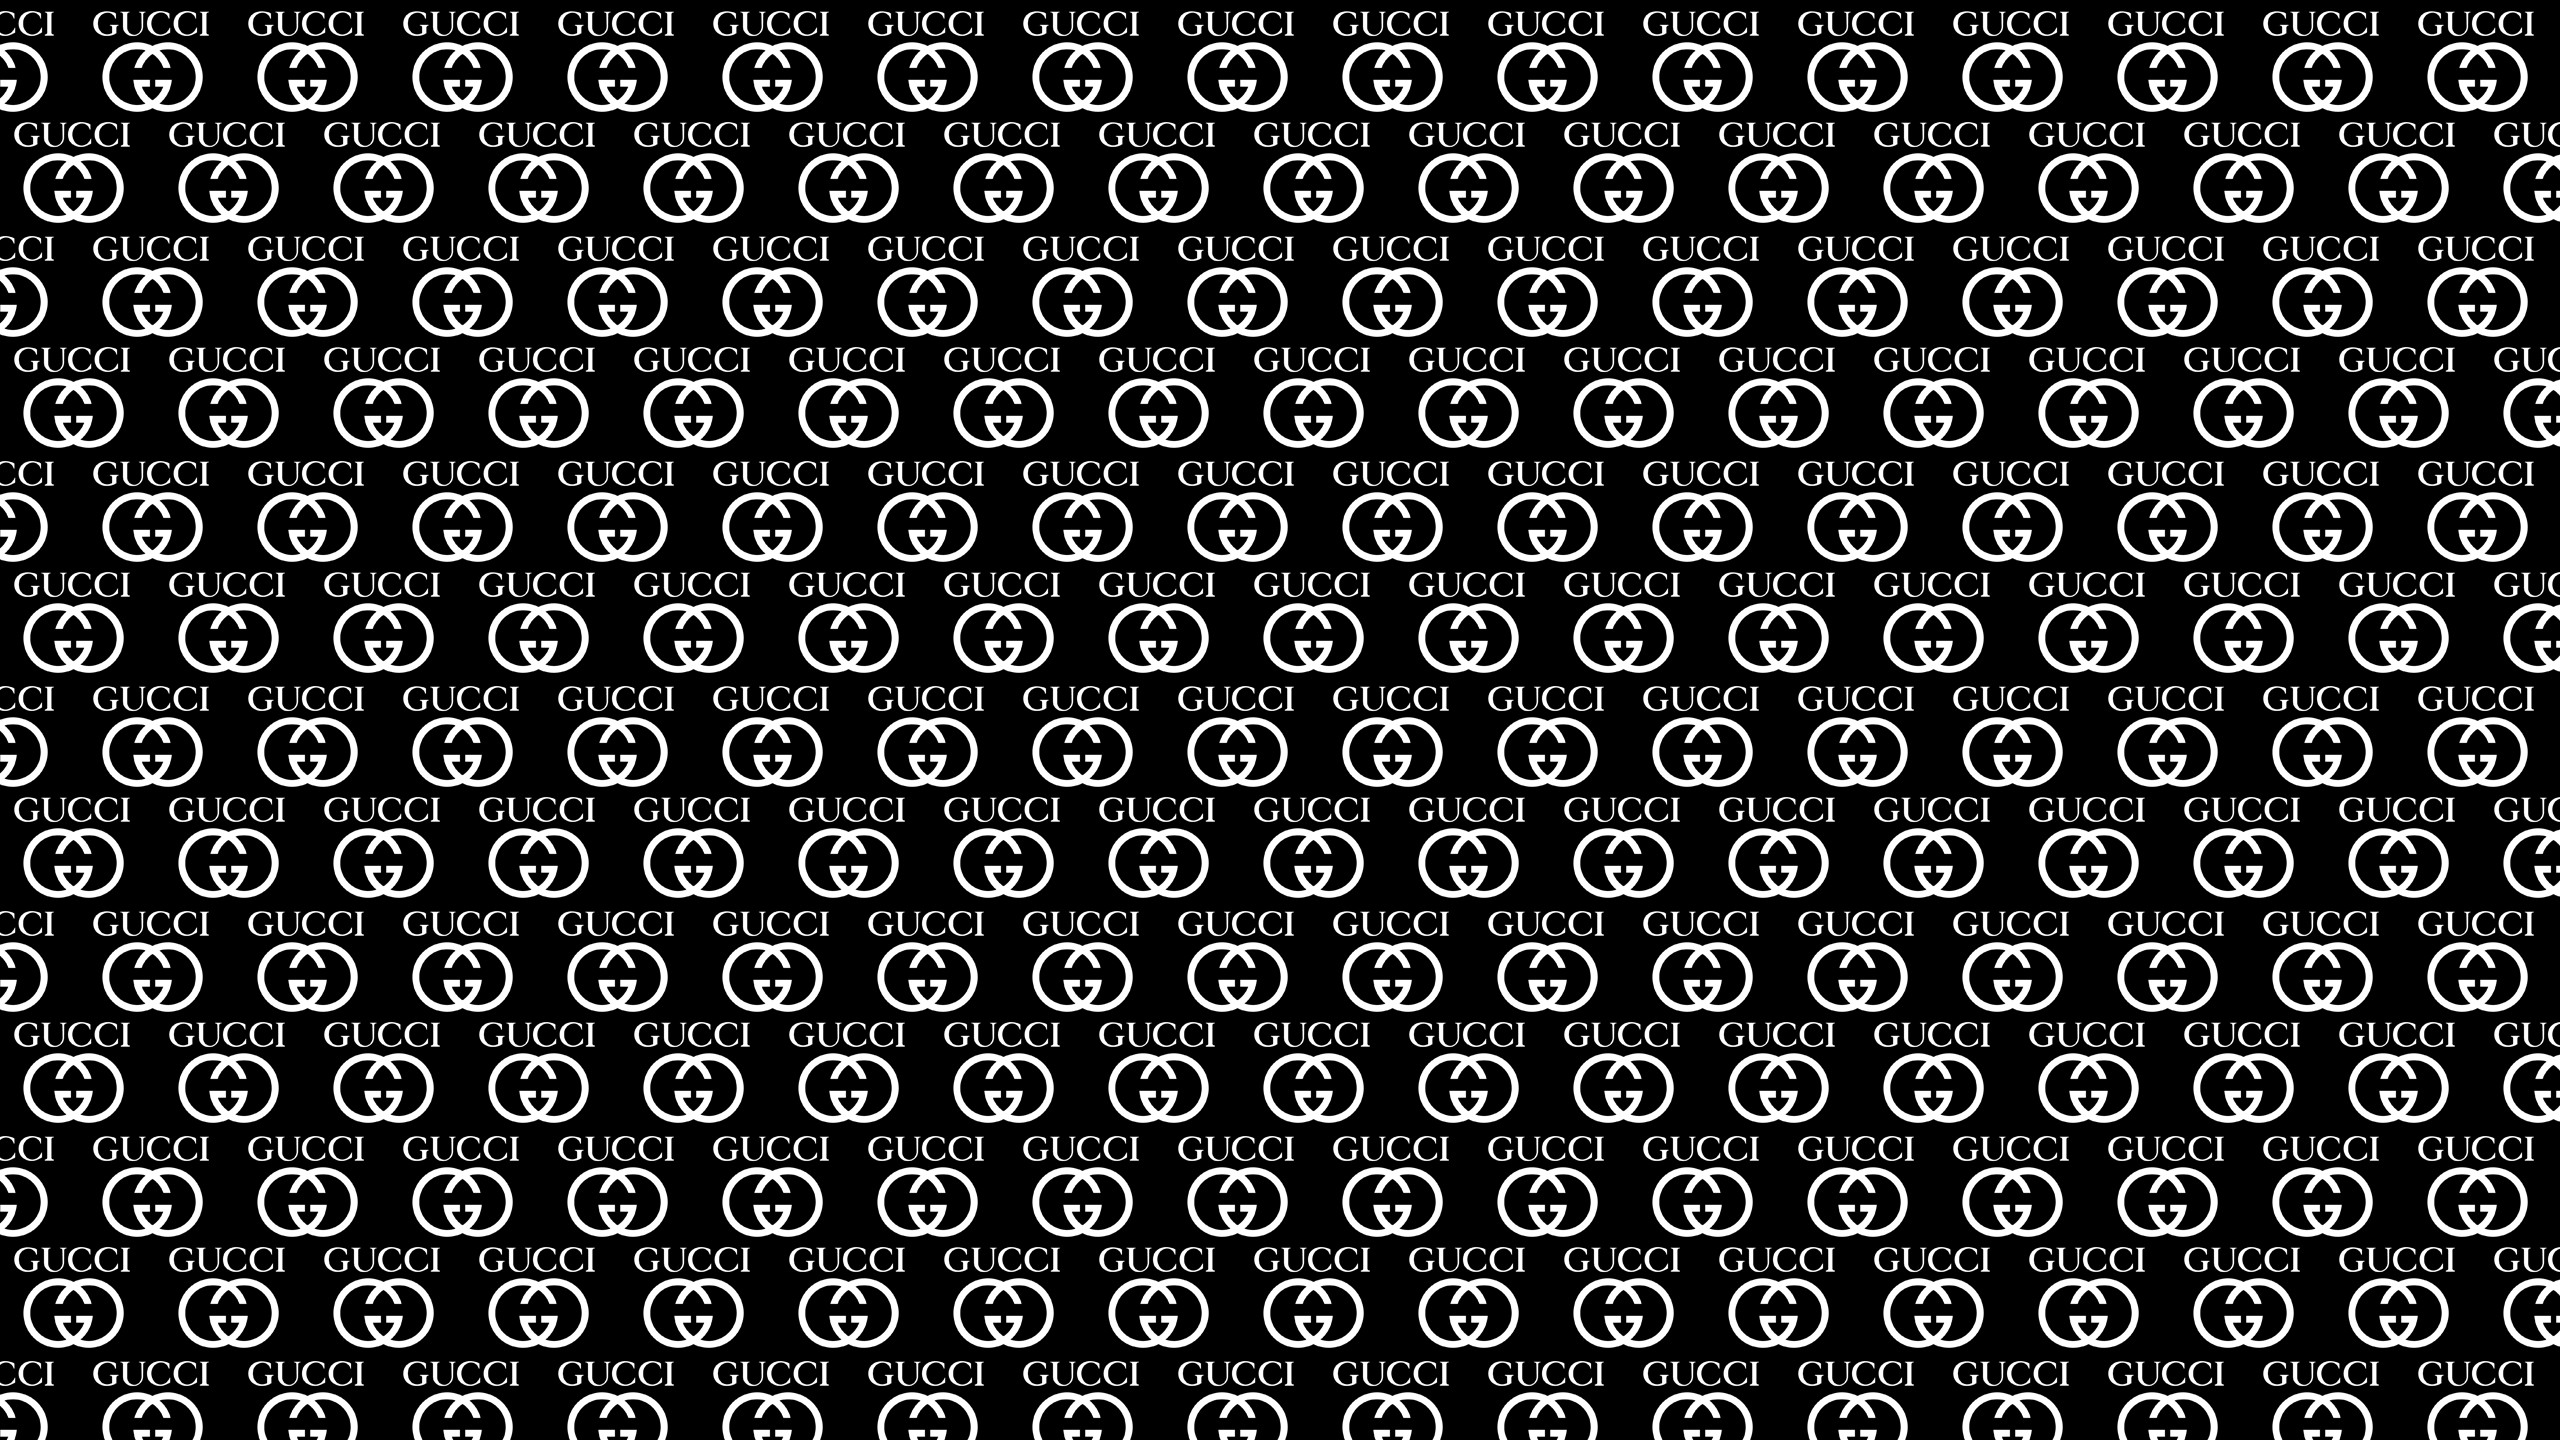 2560x1440 Pictures gucci wallpapers HD.